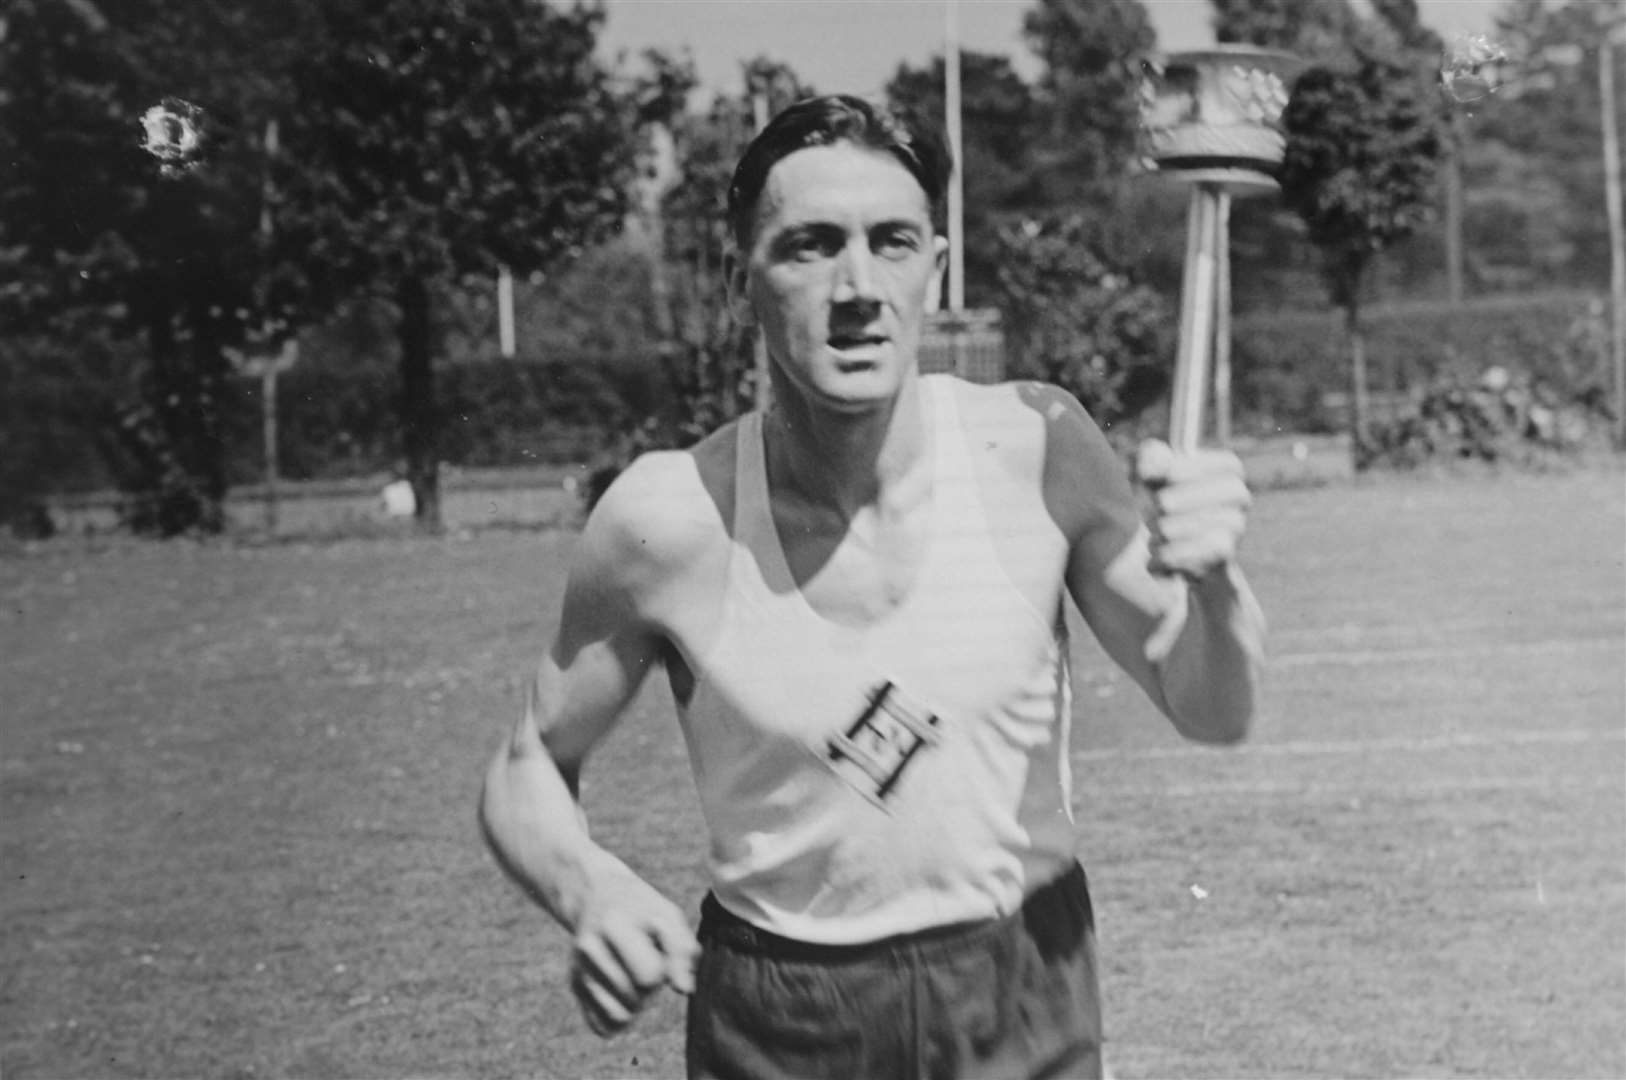 Ron Piles who ran through Kent with the Olympic Torch in 1948